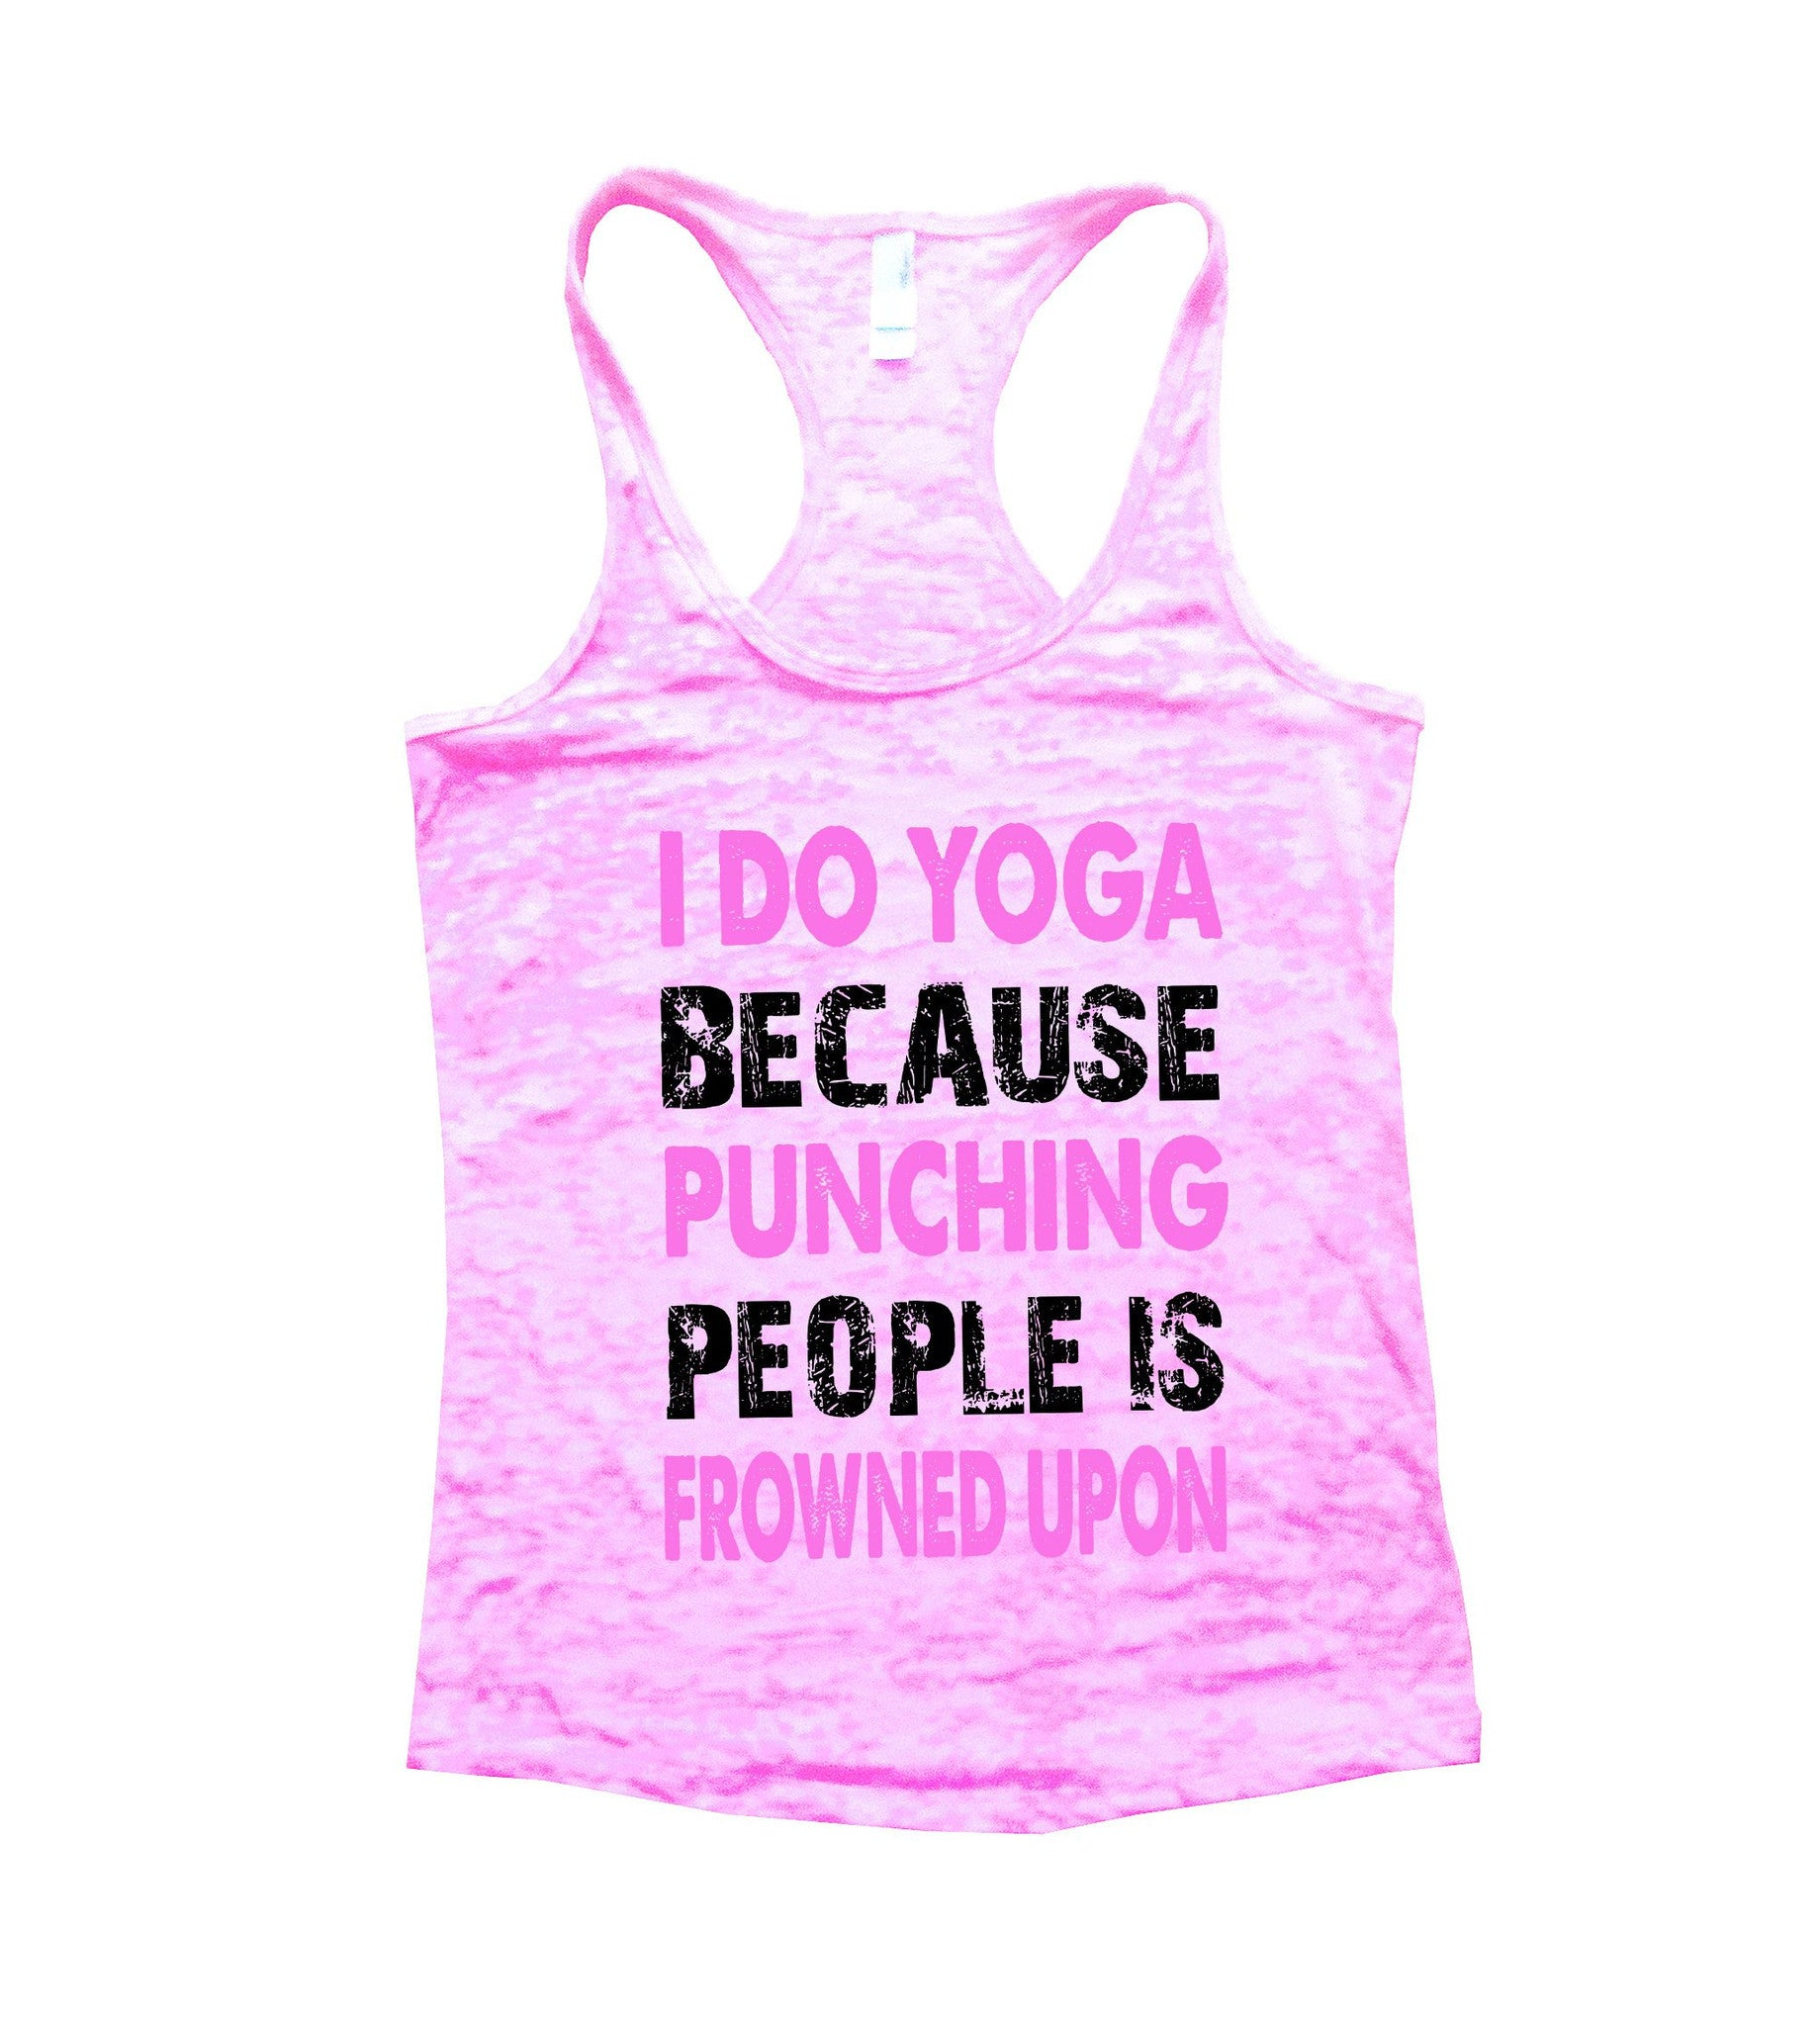 I Do Yoga Because Punching People Is Frowned Upon Burnout Tank Top By BurnoutTankTops.com - 710 - Funny Shirts Tank Tops Burnouts and Triblends  - 2